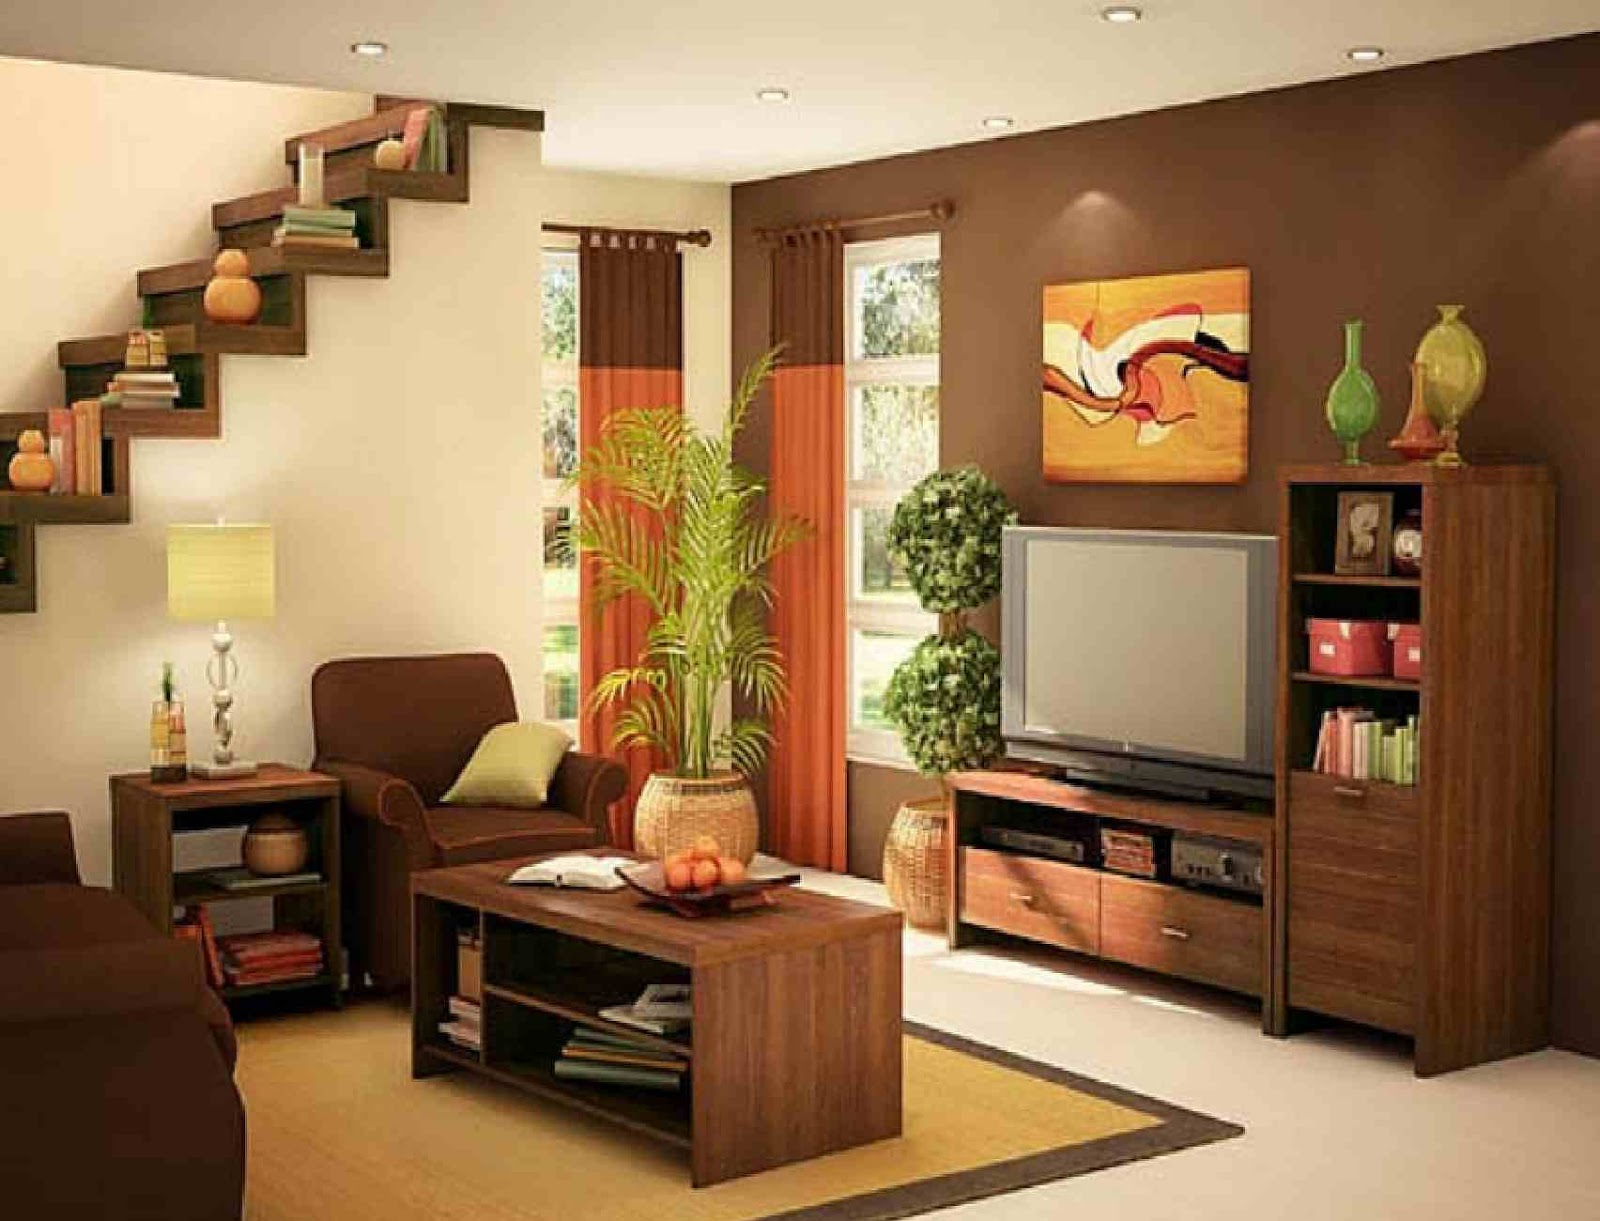 Home interior designs simple living room designs for Simple interior ideas